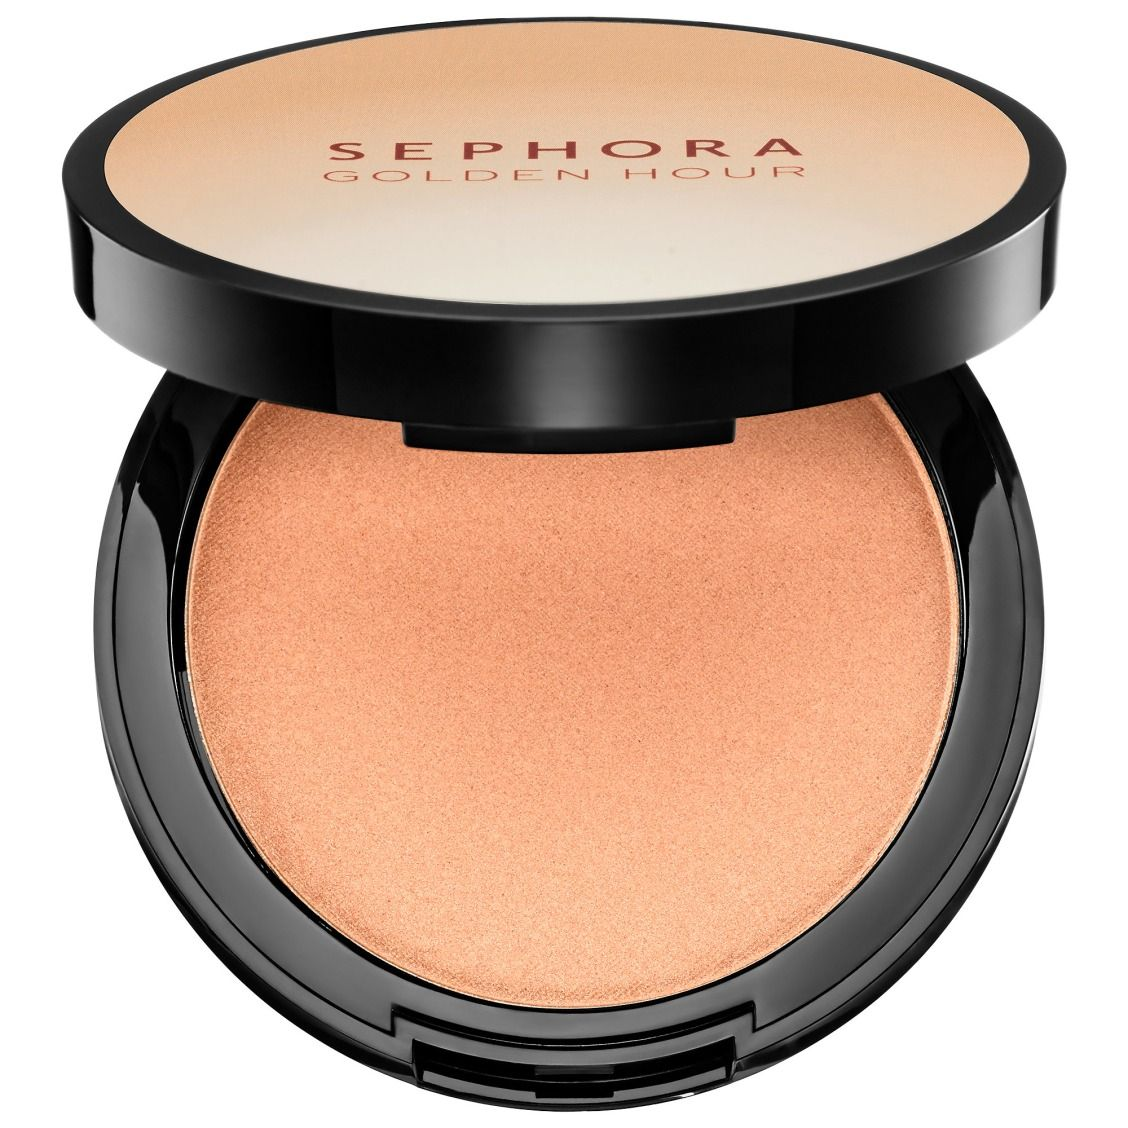 New At Sephora Sephora Collection Golden Hour Highlighting Powder Sephora Top Makeup Products Makeup Accessories